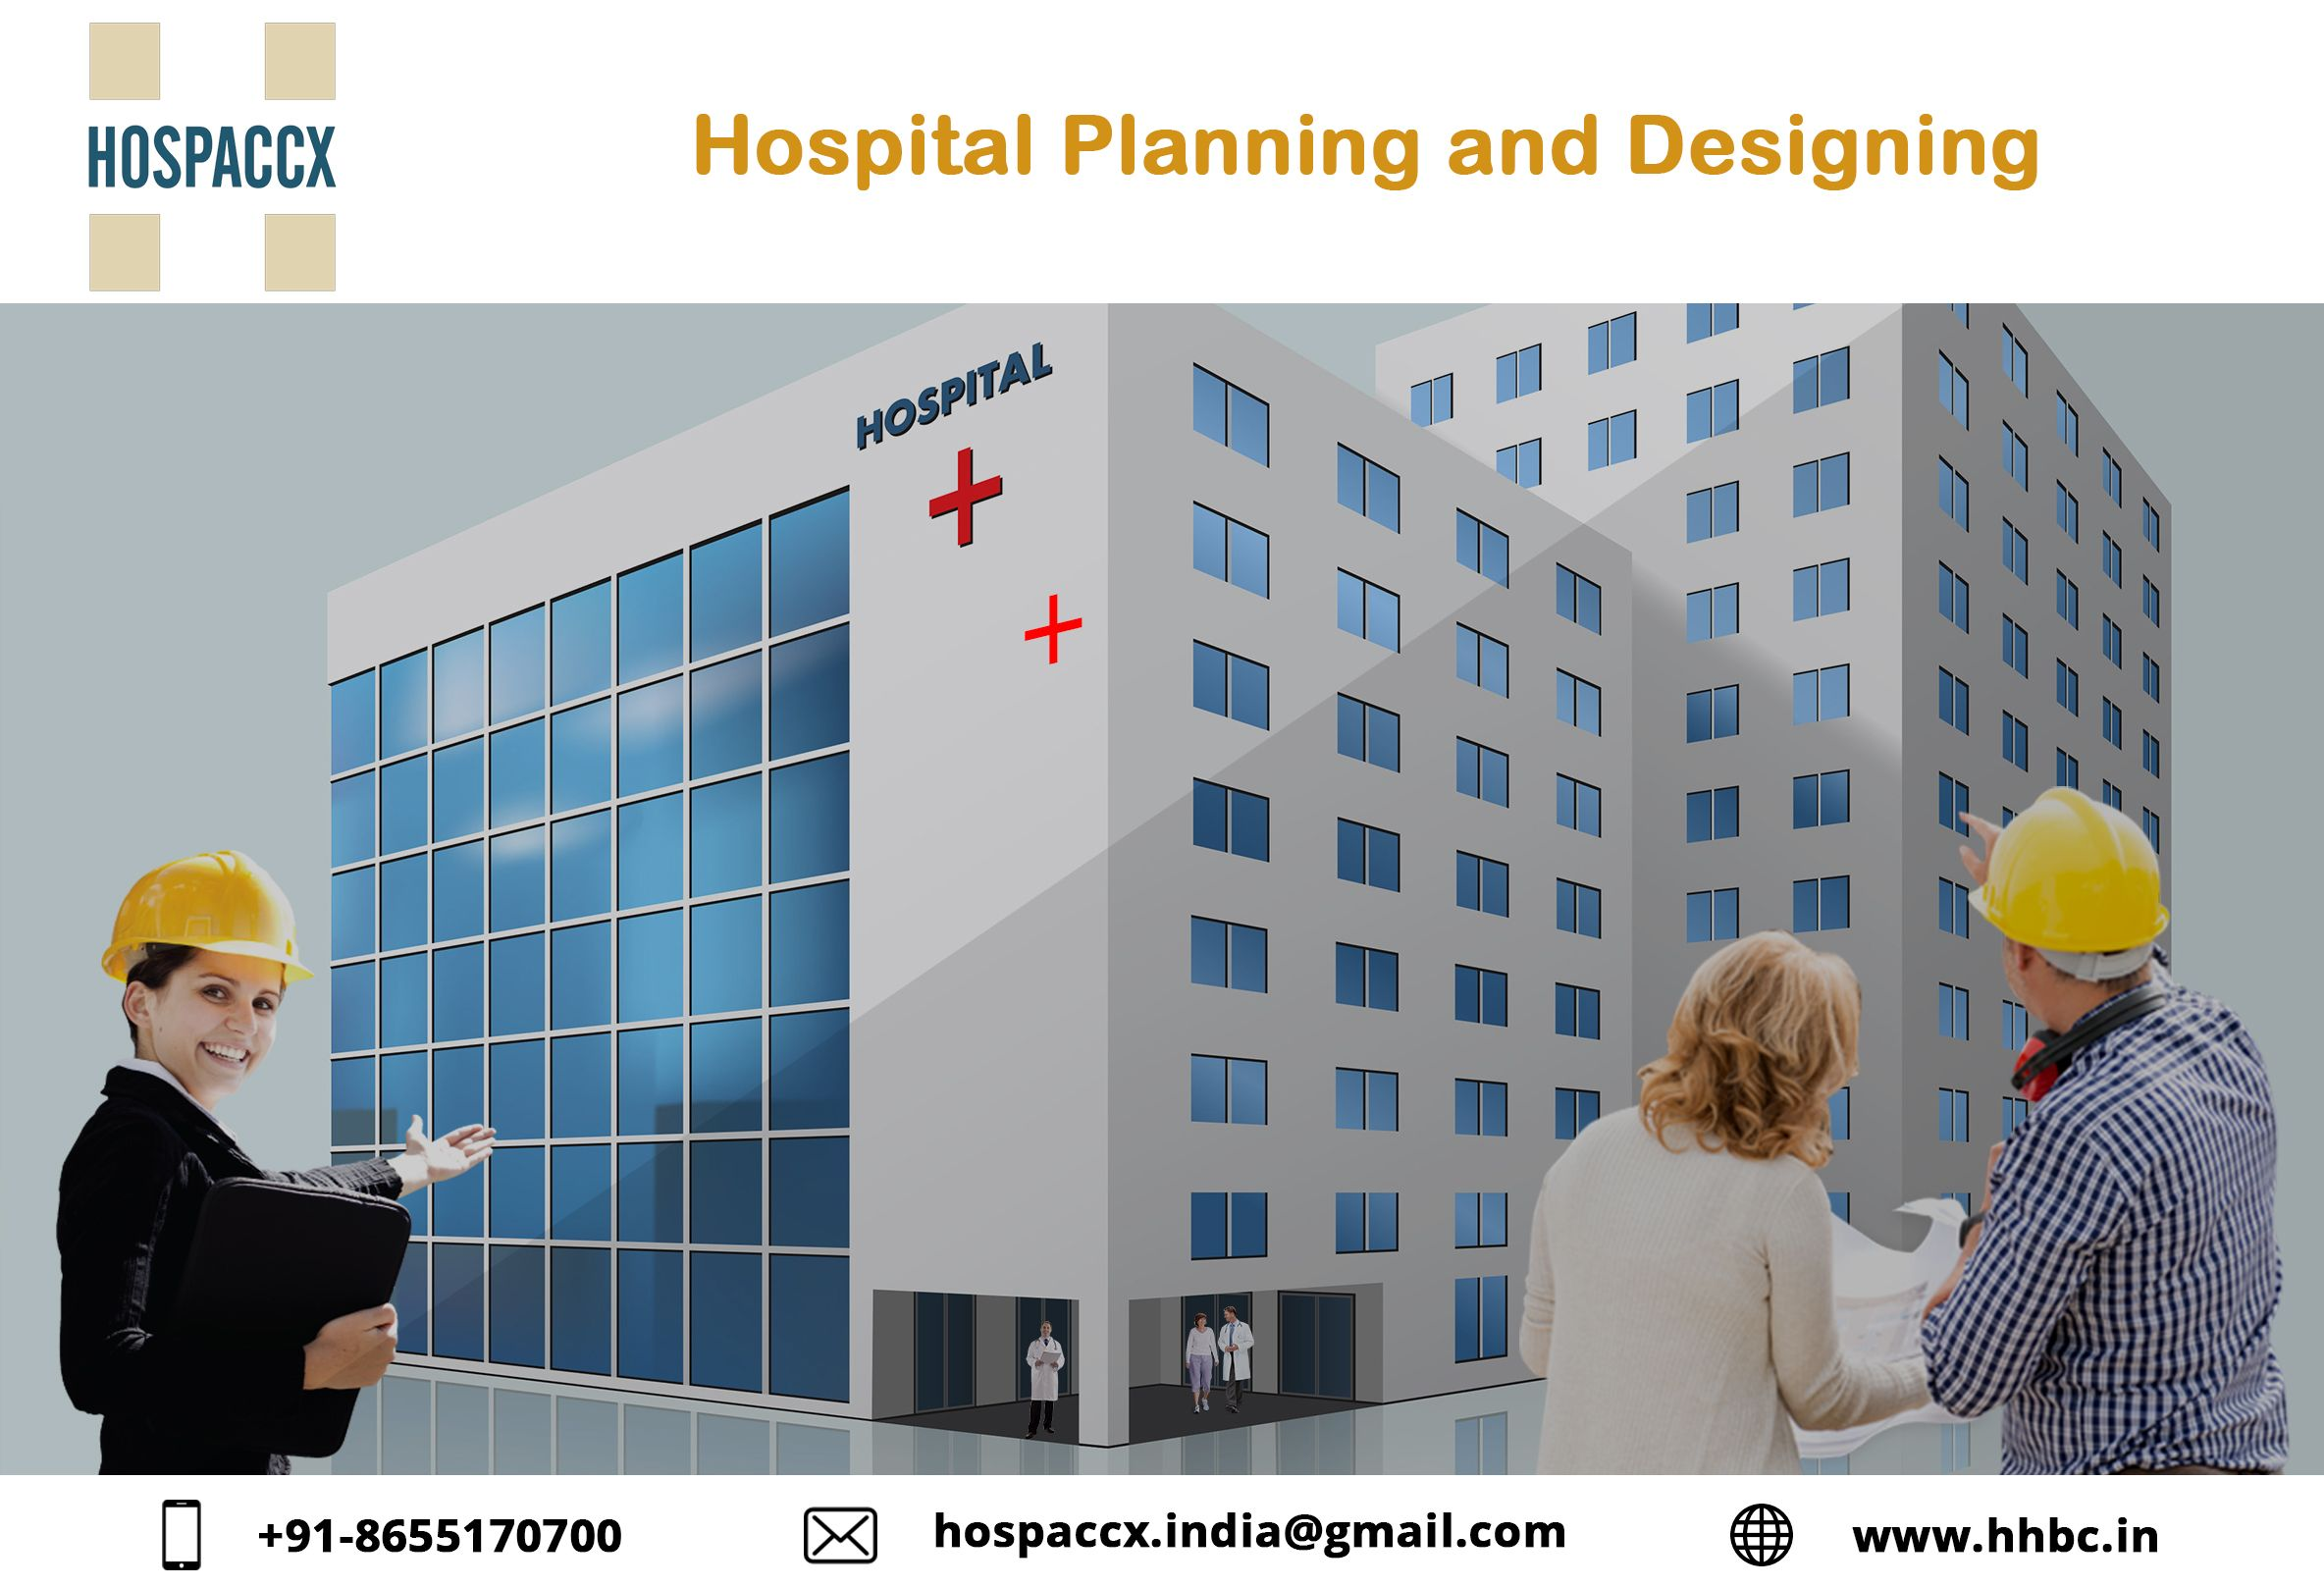 Hospital Planning and Designing !! Hospaccx team of